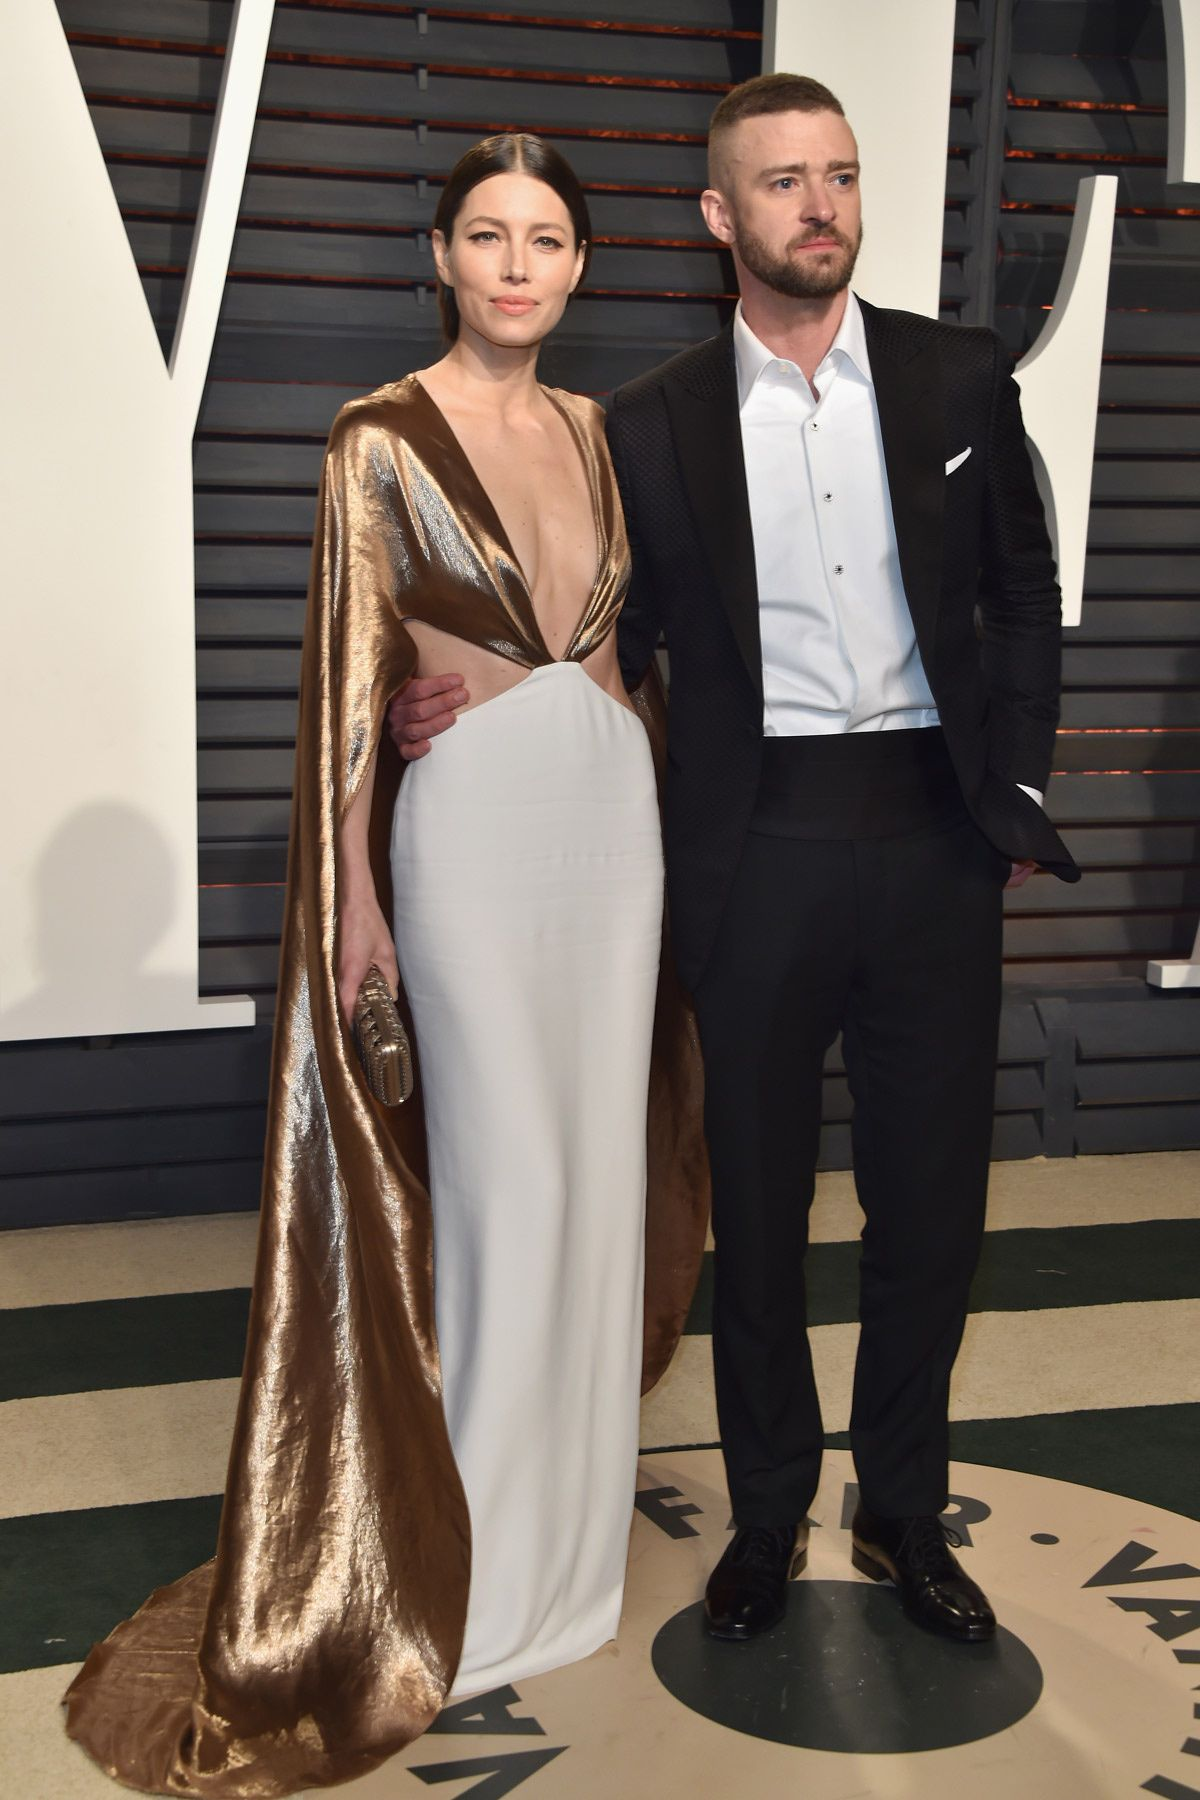 Big love Show from Justin Timberlake Jessica Biel at the Oscars in 2017 behind the back